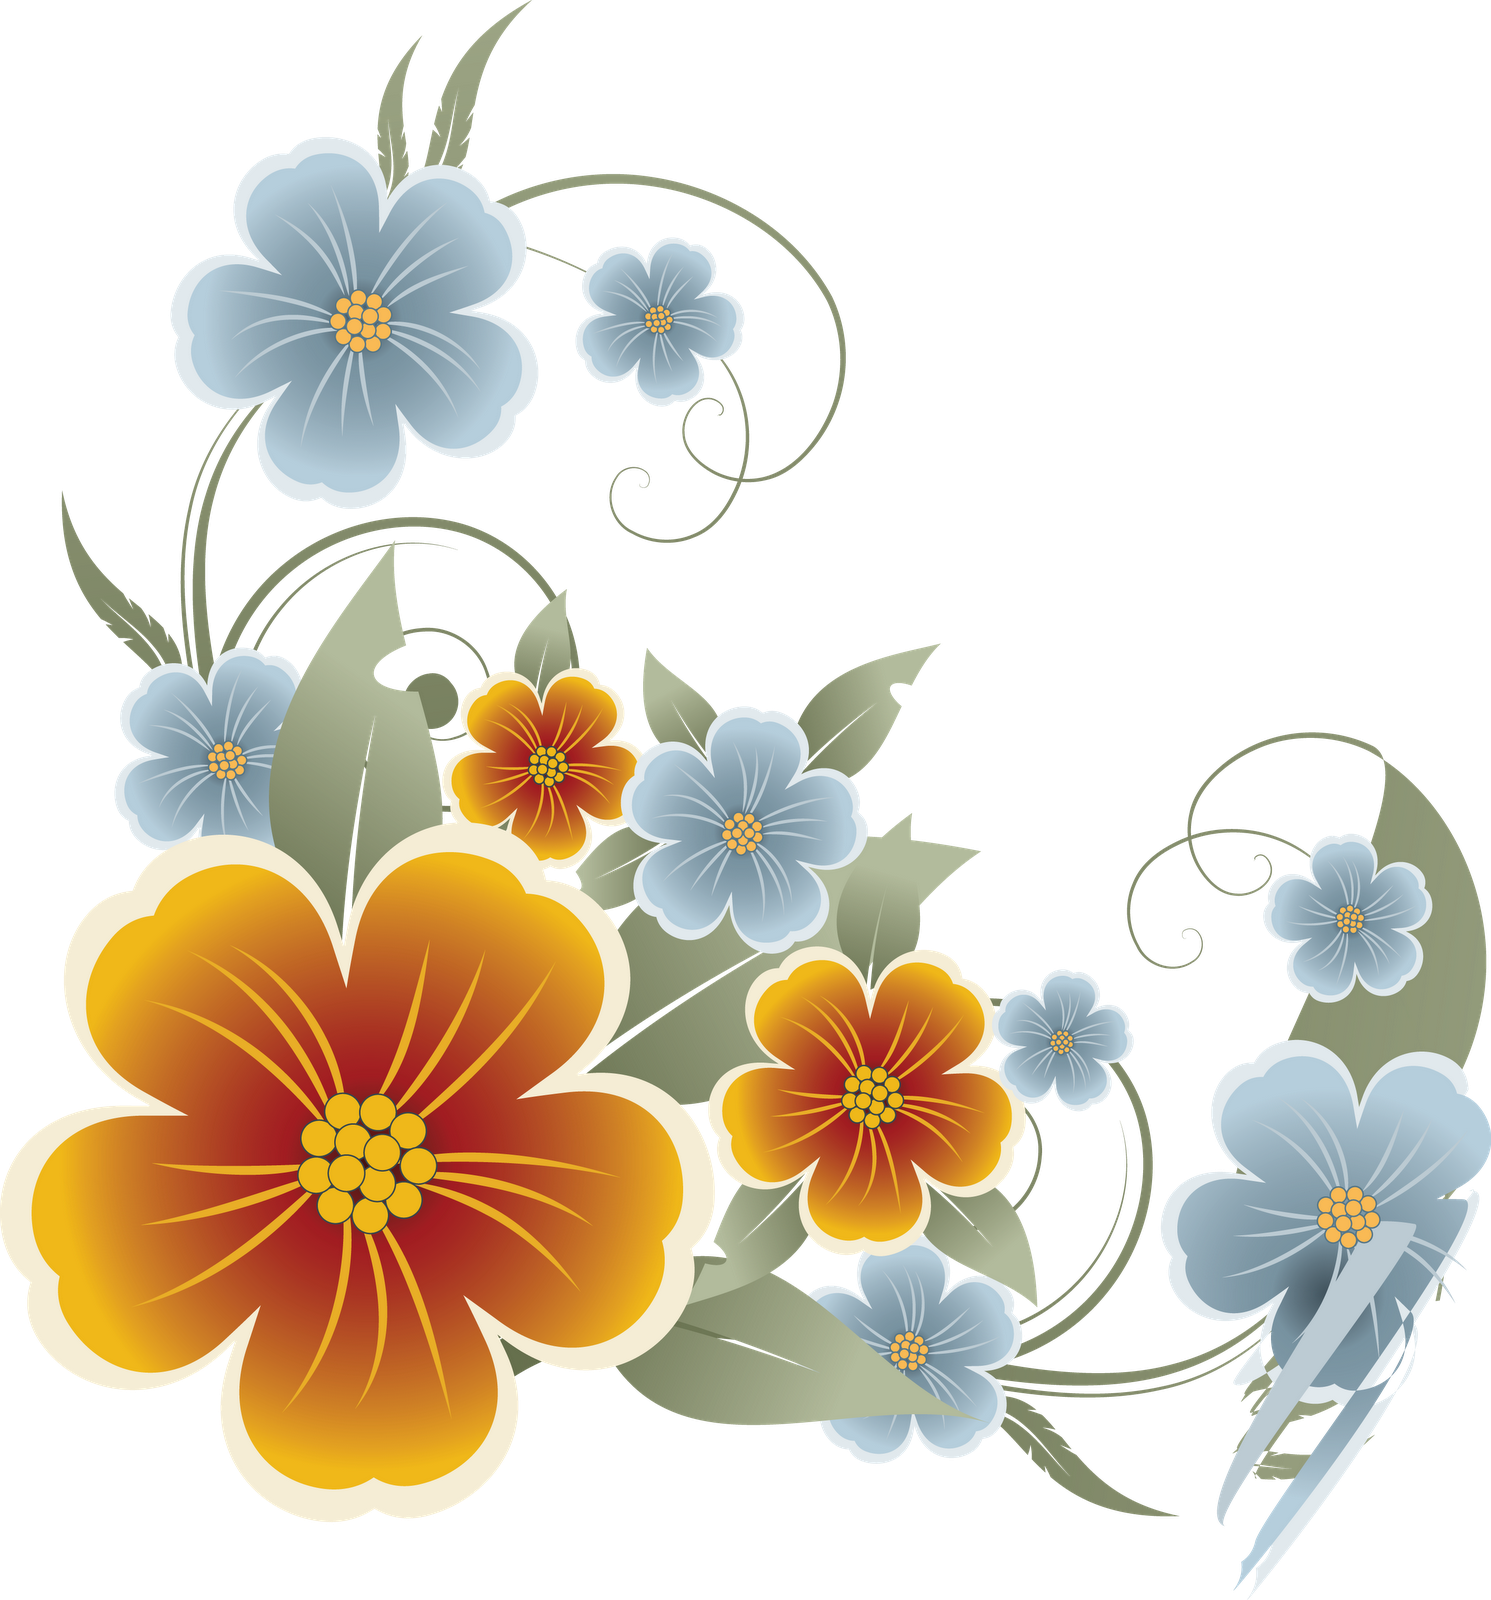 flowers vectors transparent #8191